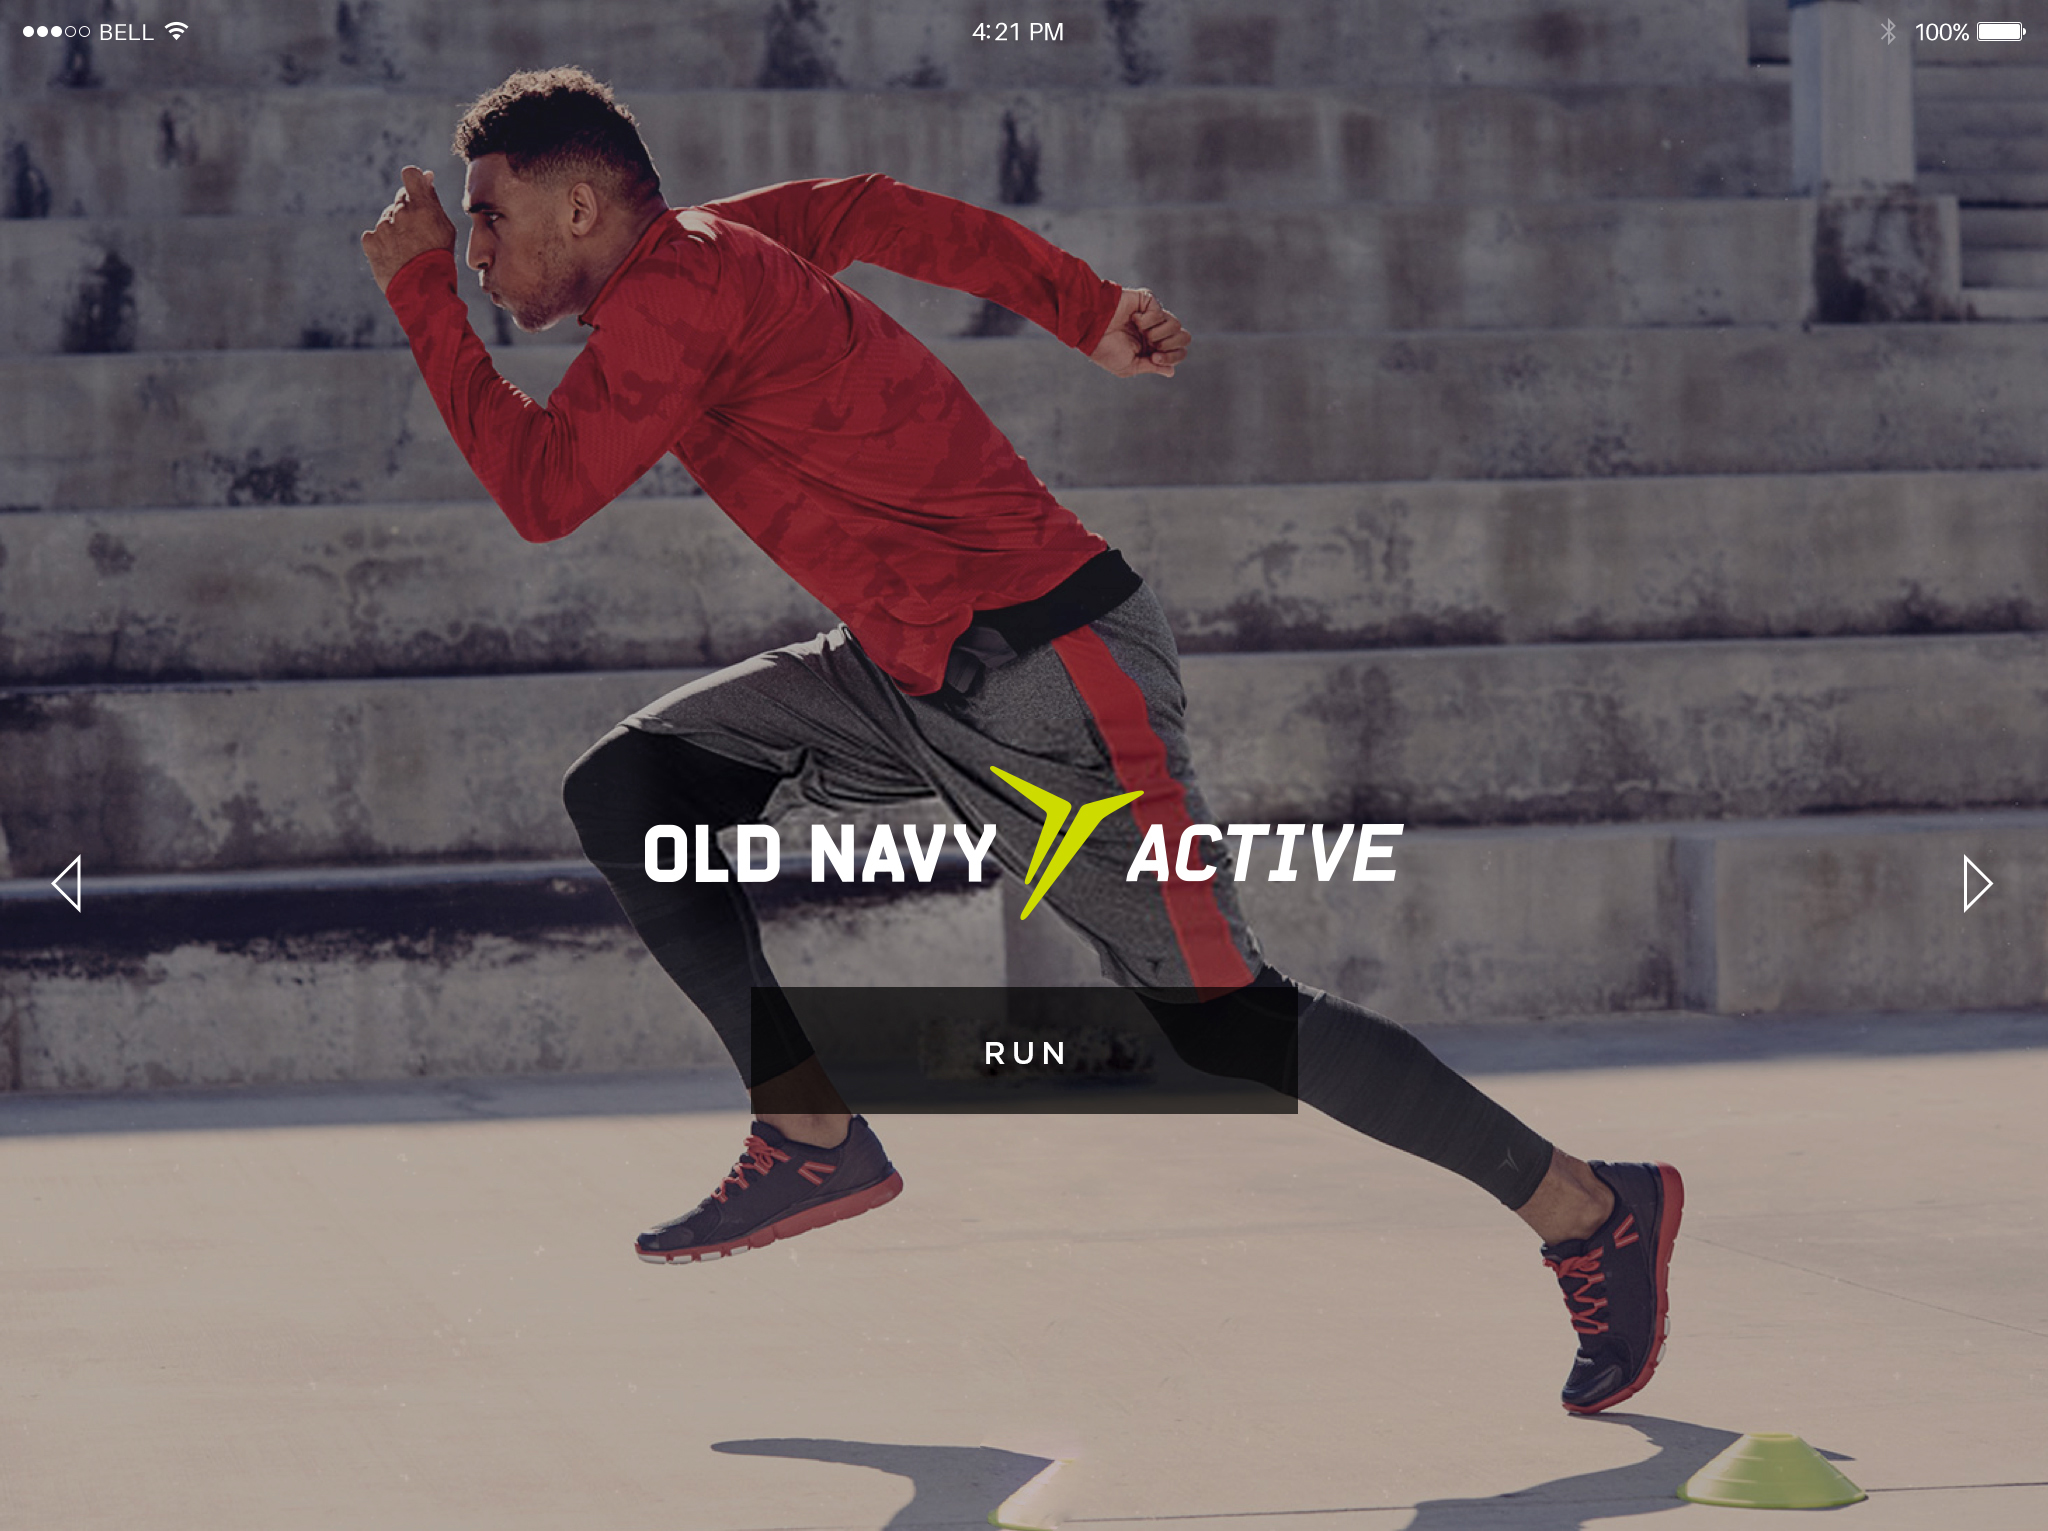 Ui design for old navy amy weibel i crafted a series of landing screens making selects from the old navy photo library these screens would autorotate buycottarizona